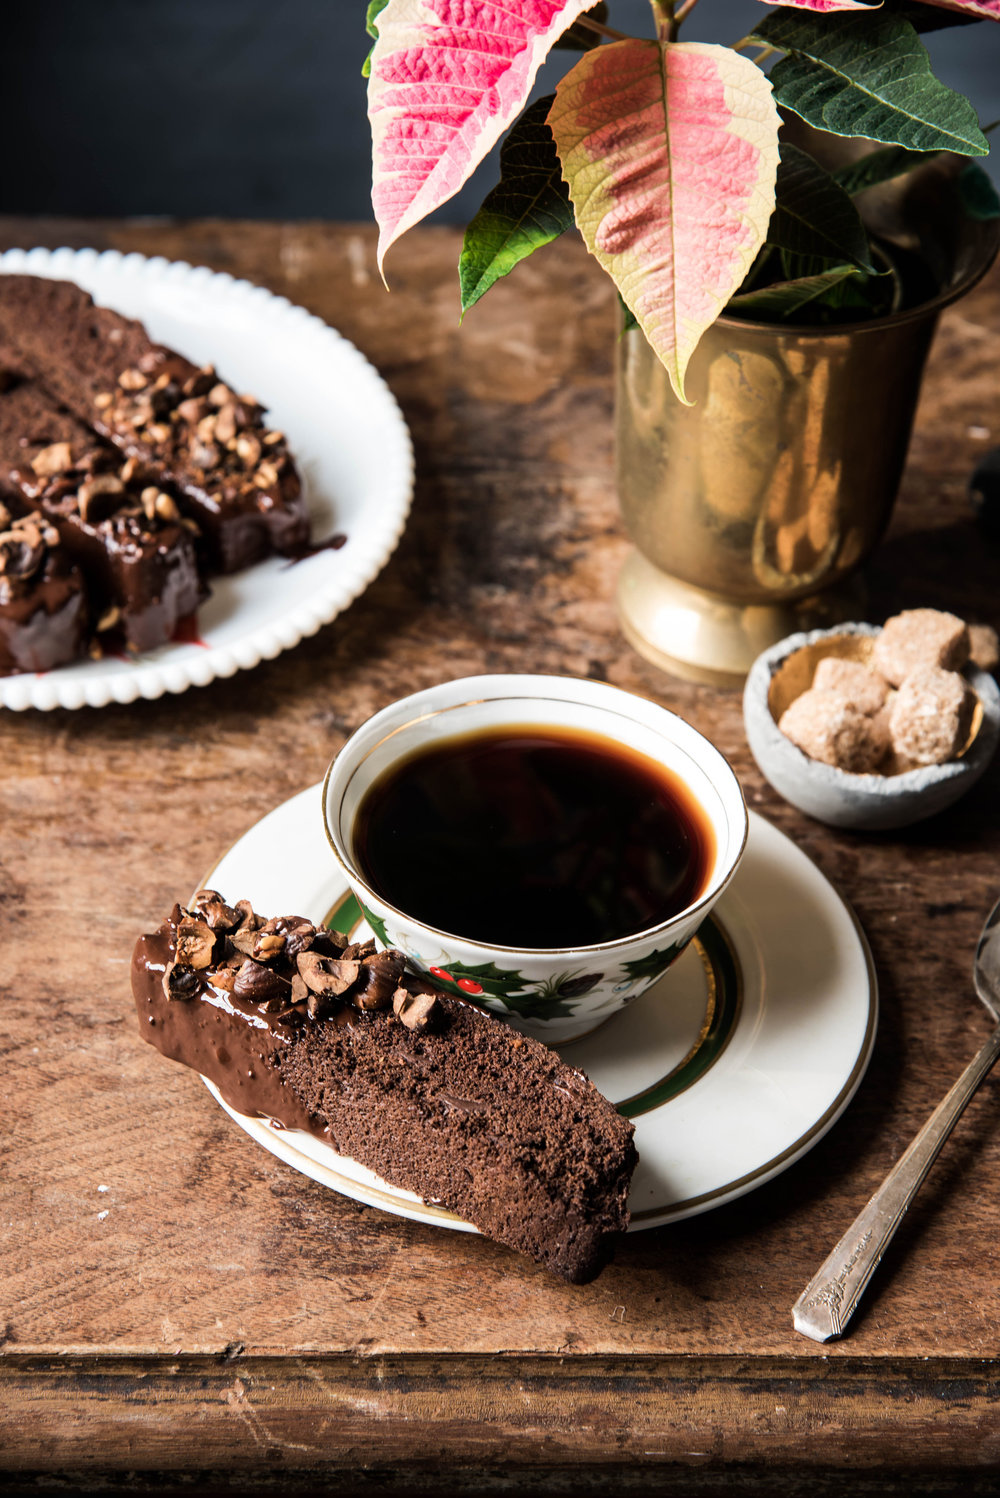 Double Chocolate Biscotti With Hazelnuts - A Holiday Chocolate Treat